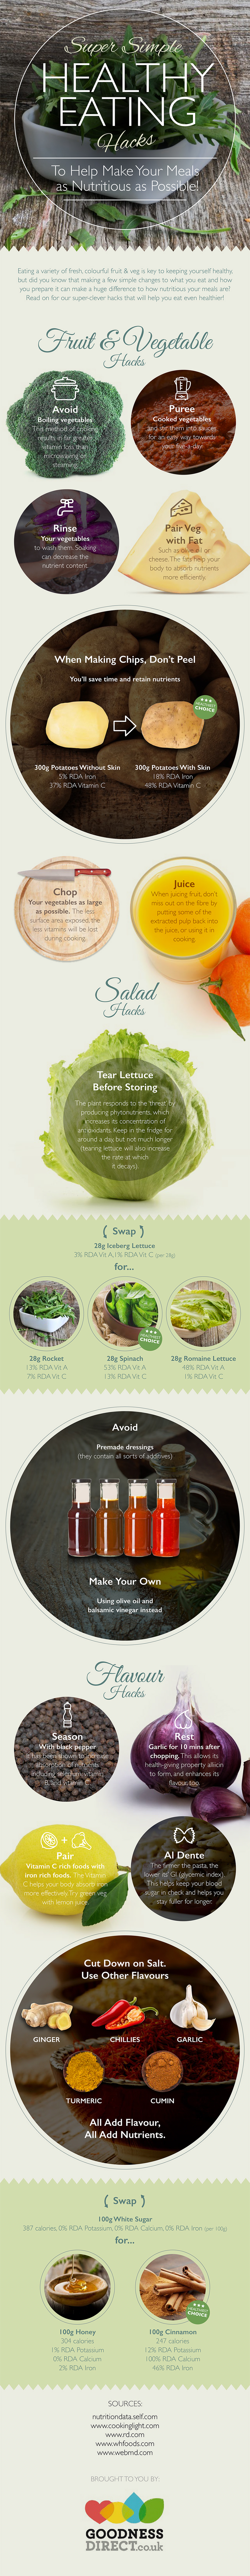 Make Healthy Eating Easy With These Awesome Hacks Infographic